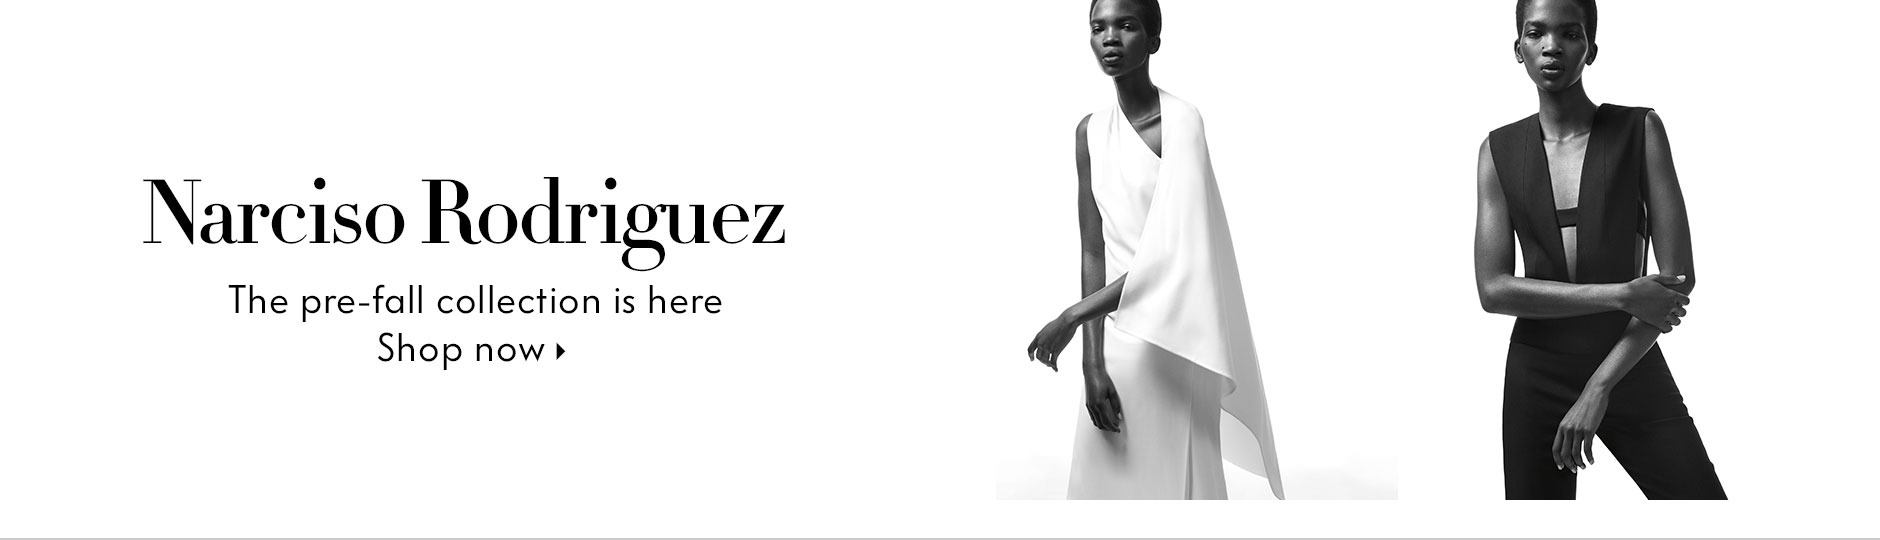 Narciso Rodriguez Lookbook